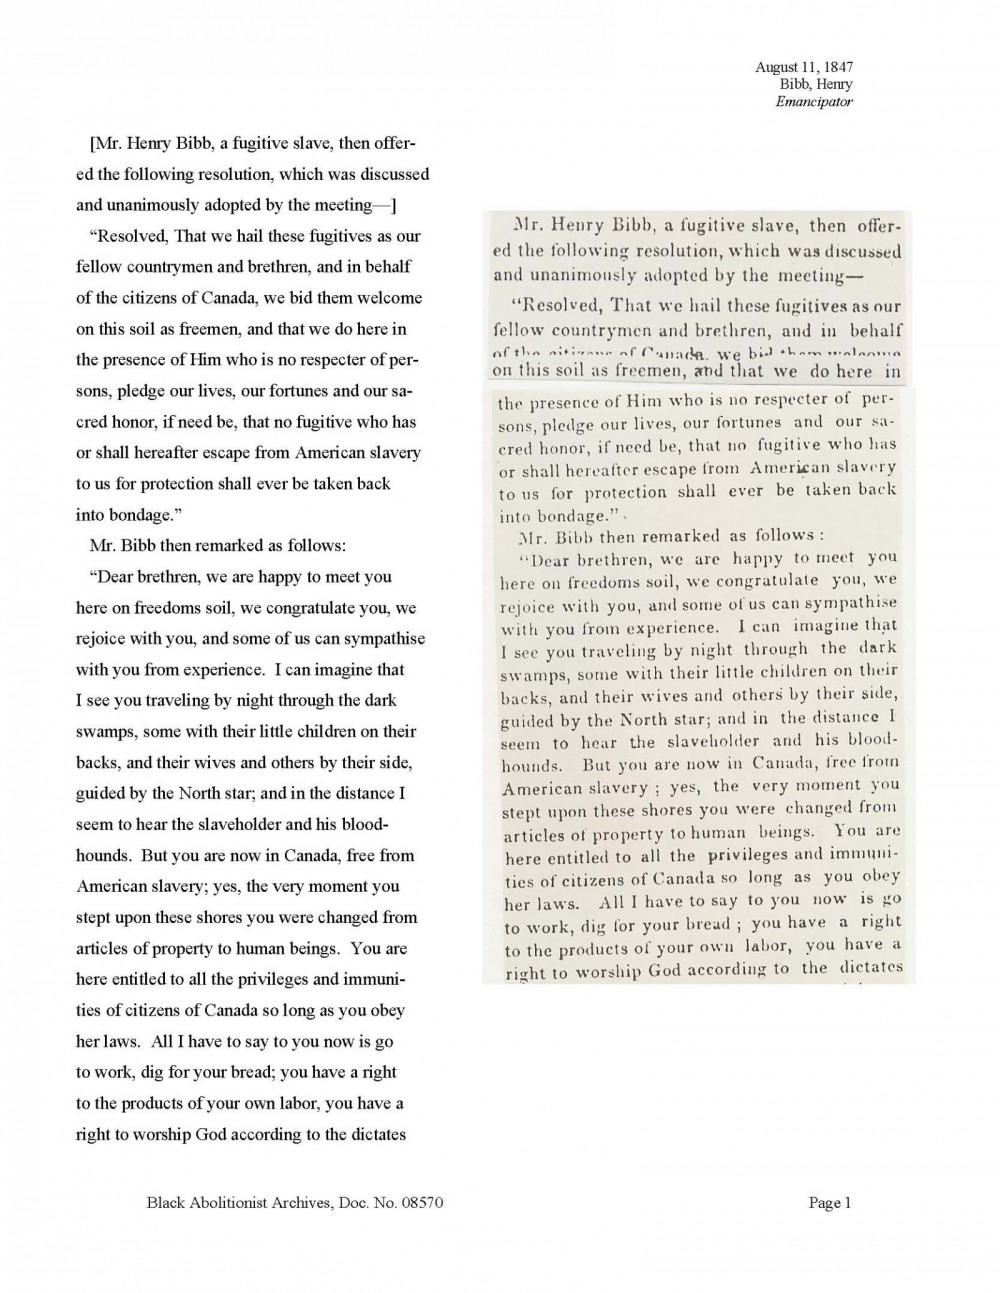 Henry Bibb, August 11, 1847 (page 1)